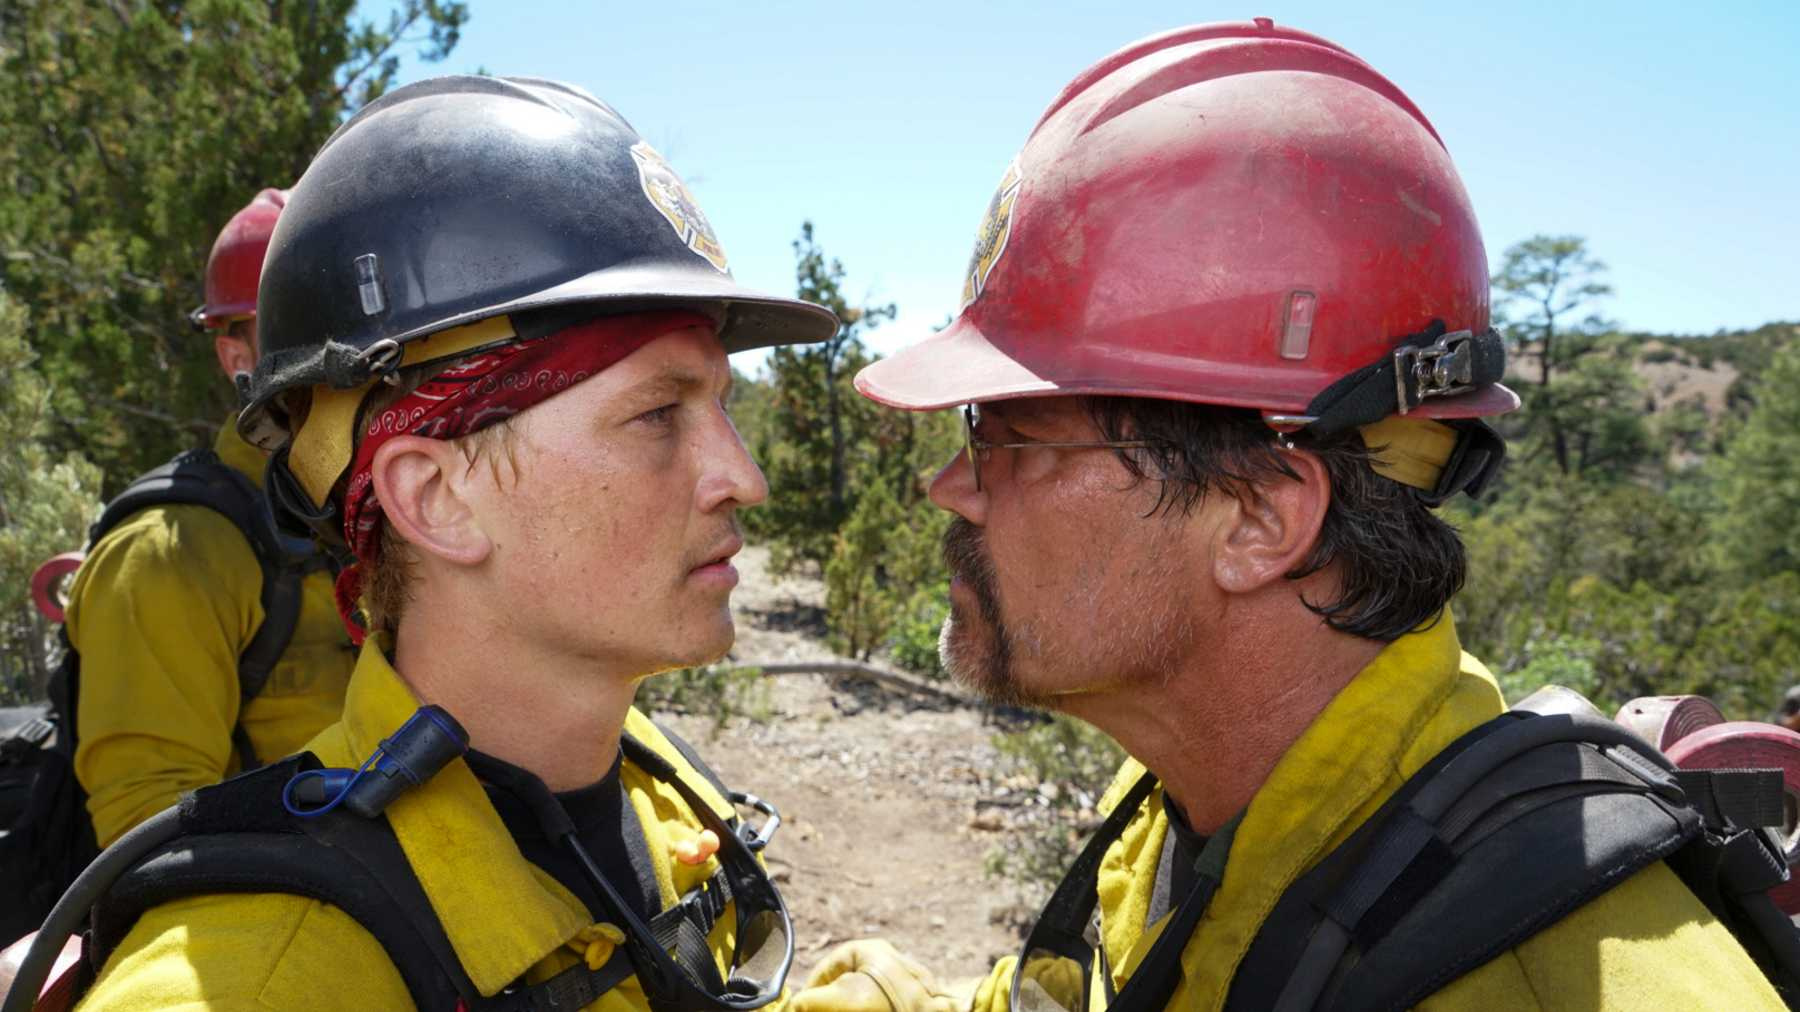 New Trailer For Firefighting Drama Only The Brave | Movies